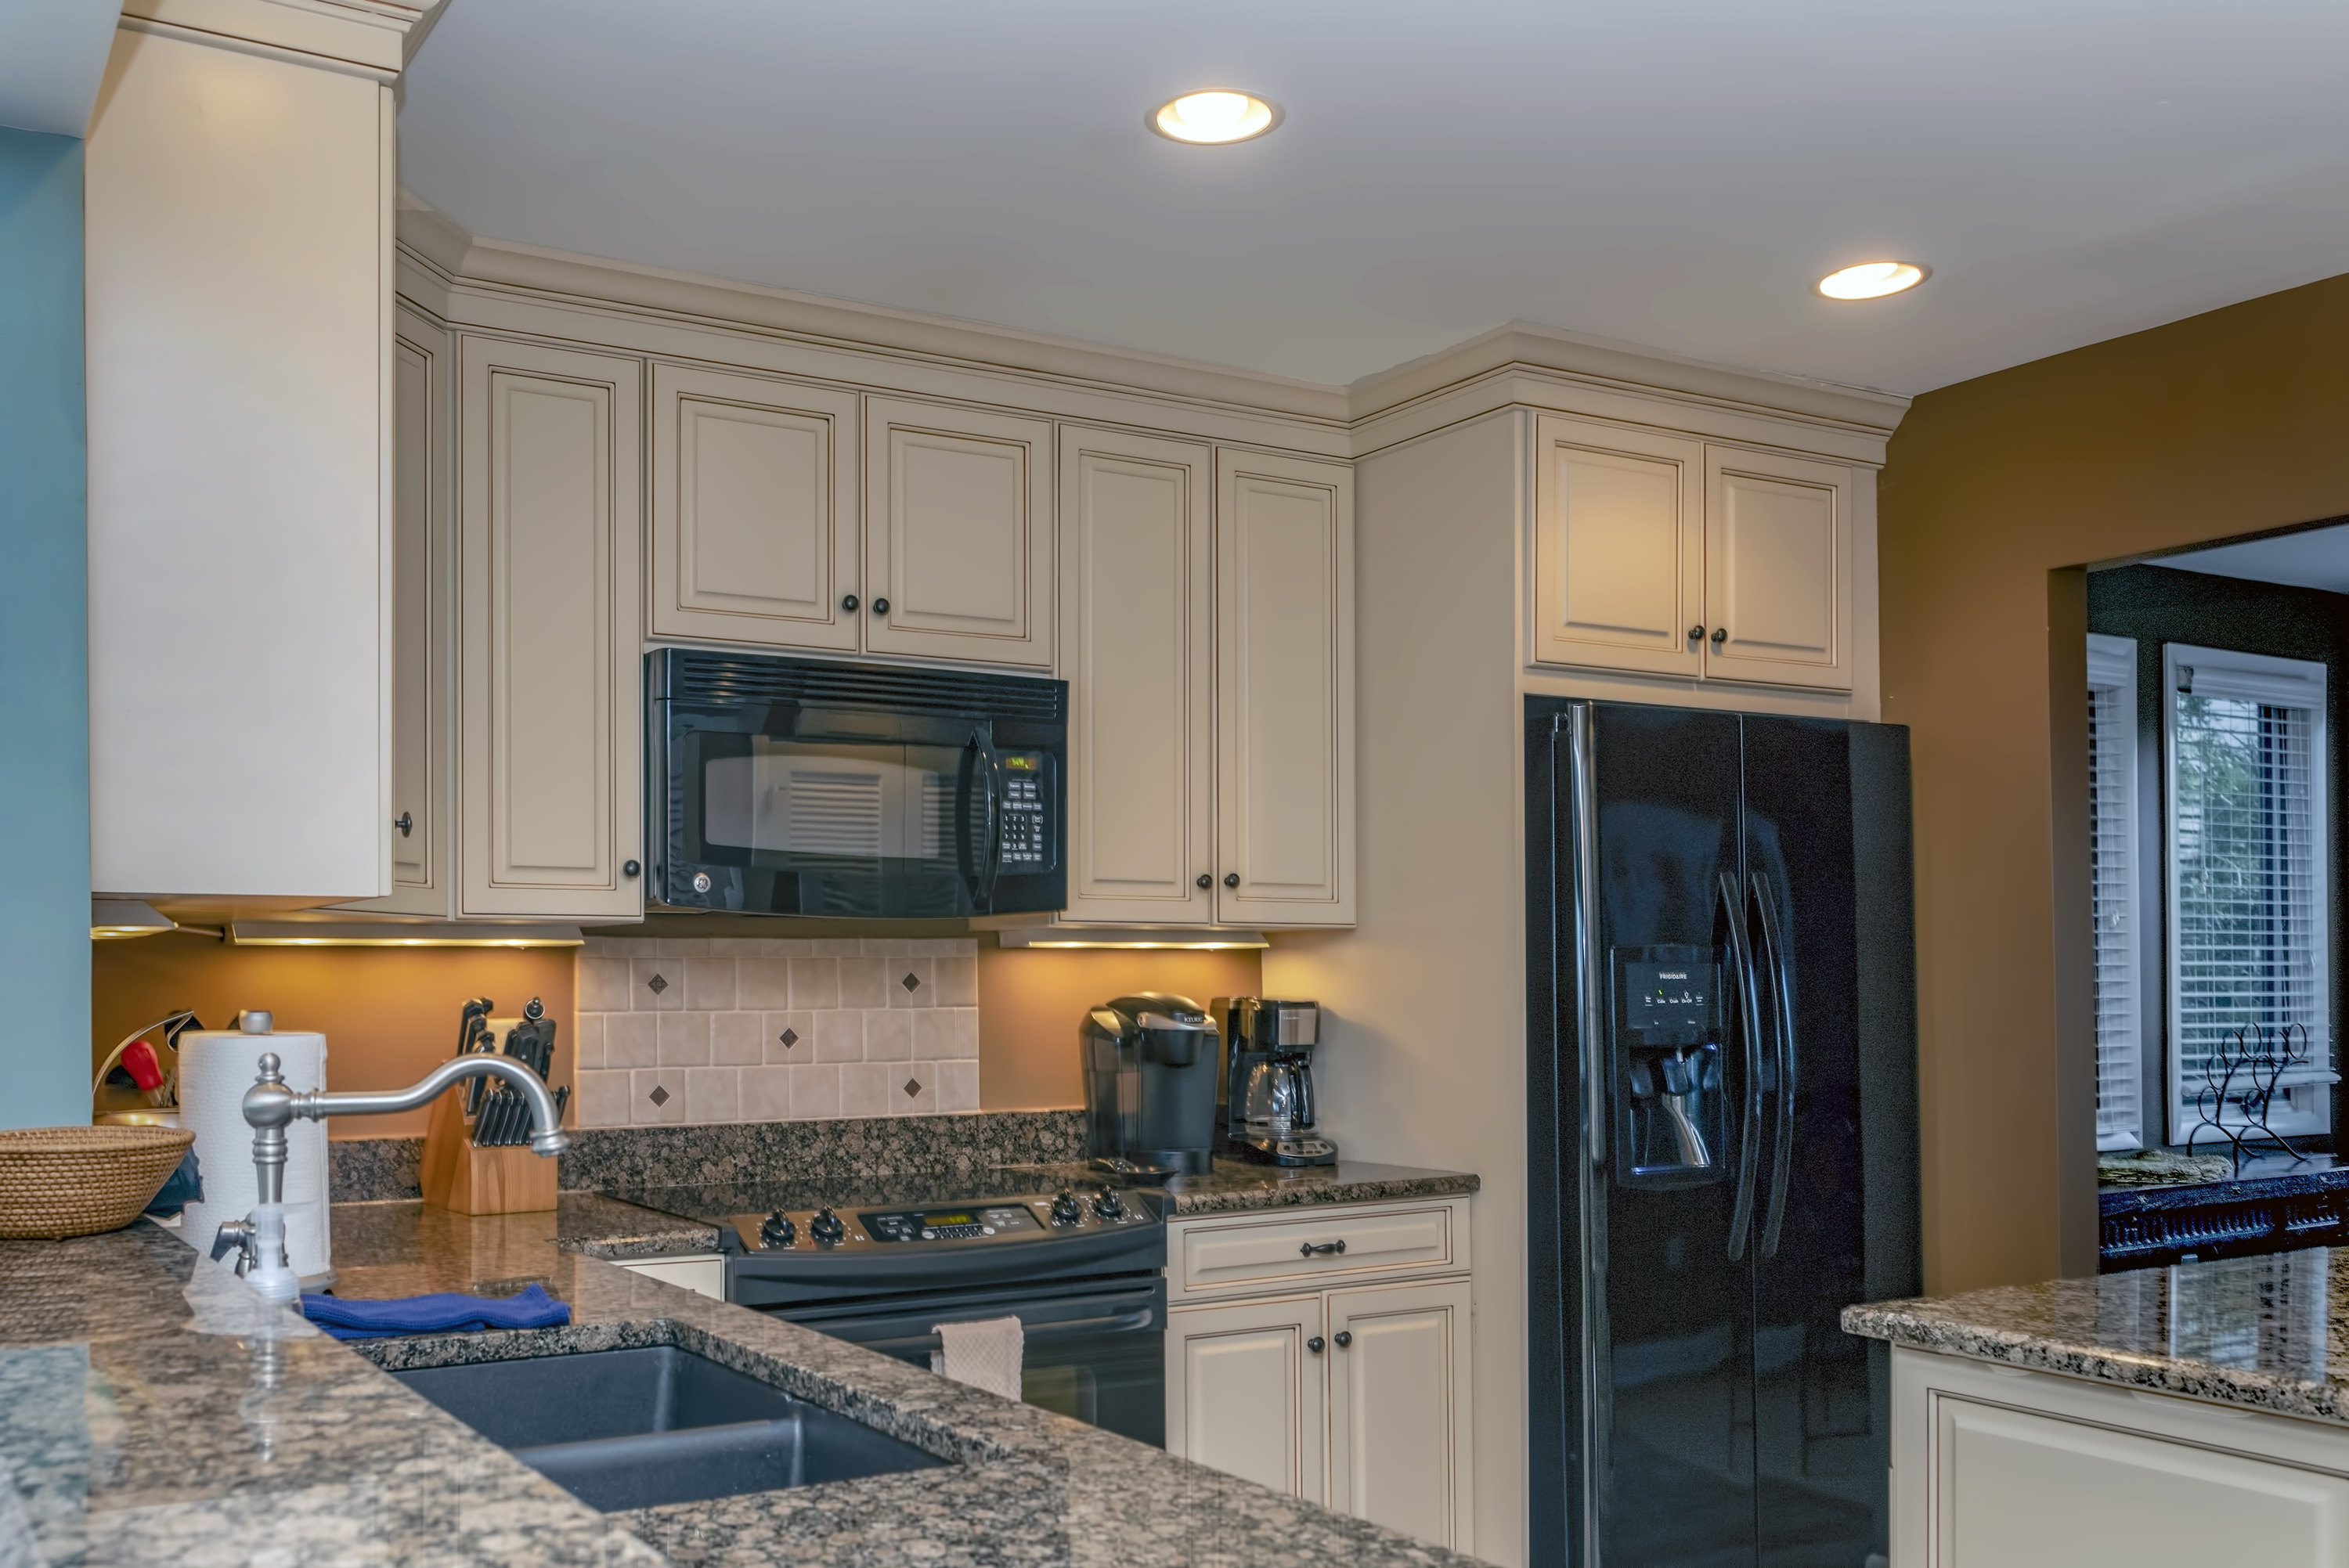 It also has updated appliances, cabinets, and a Keurig and regular coffee maker.